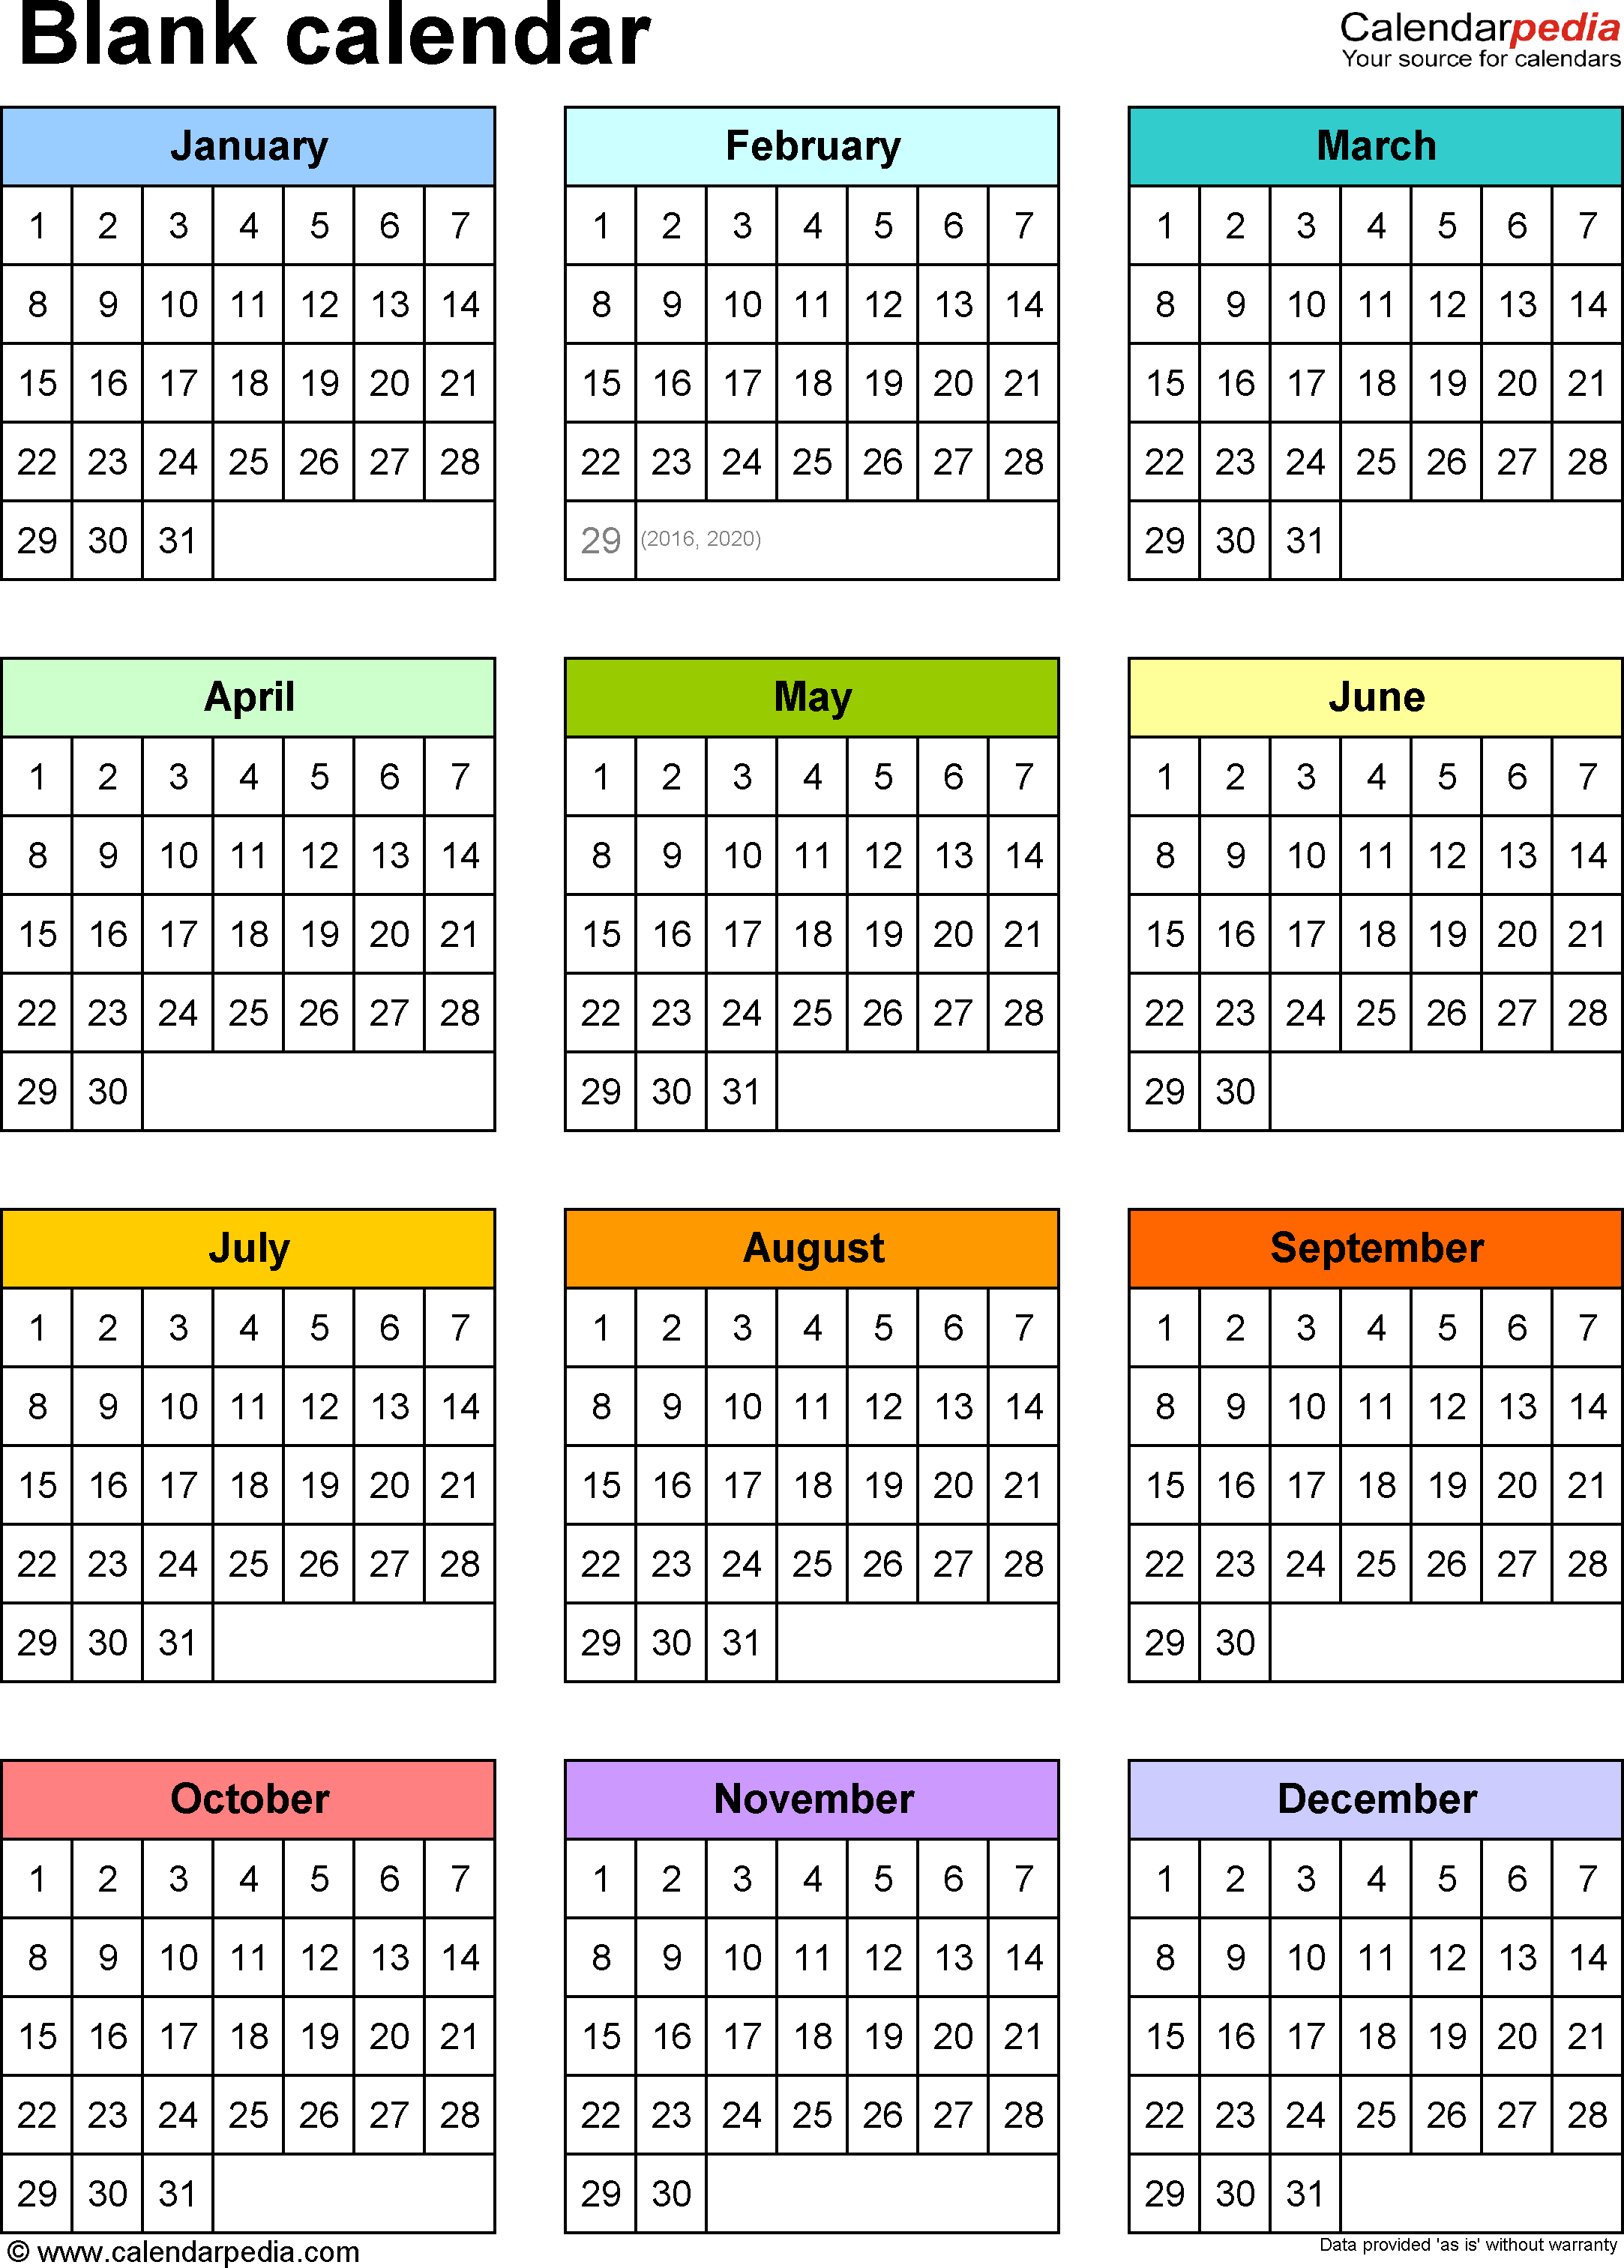 Blank Calendar - 9 Free Printable Microsoft Word Templates pertaining to Calendar Printable One Page Templates